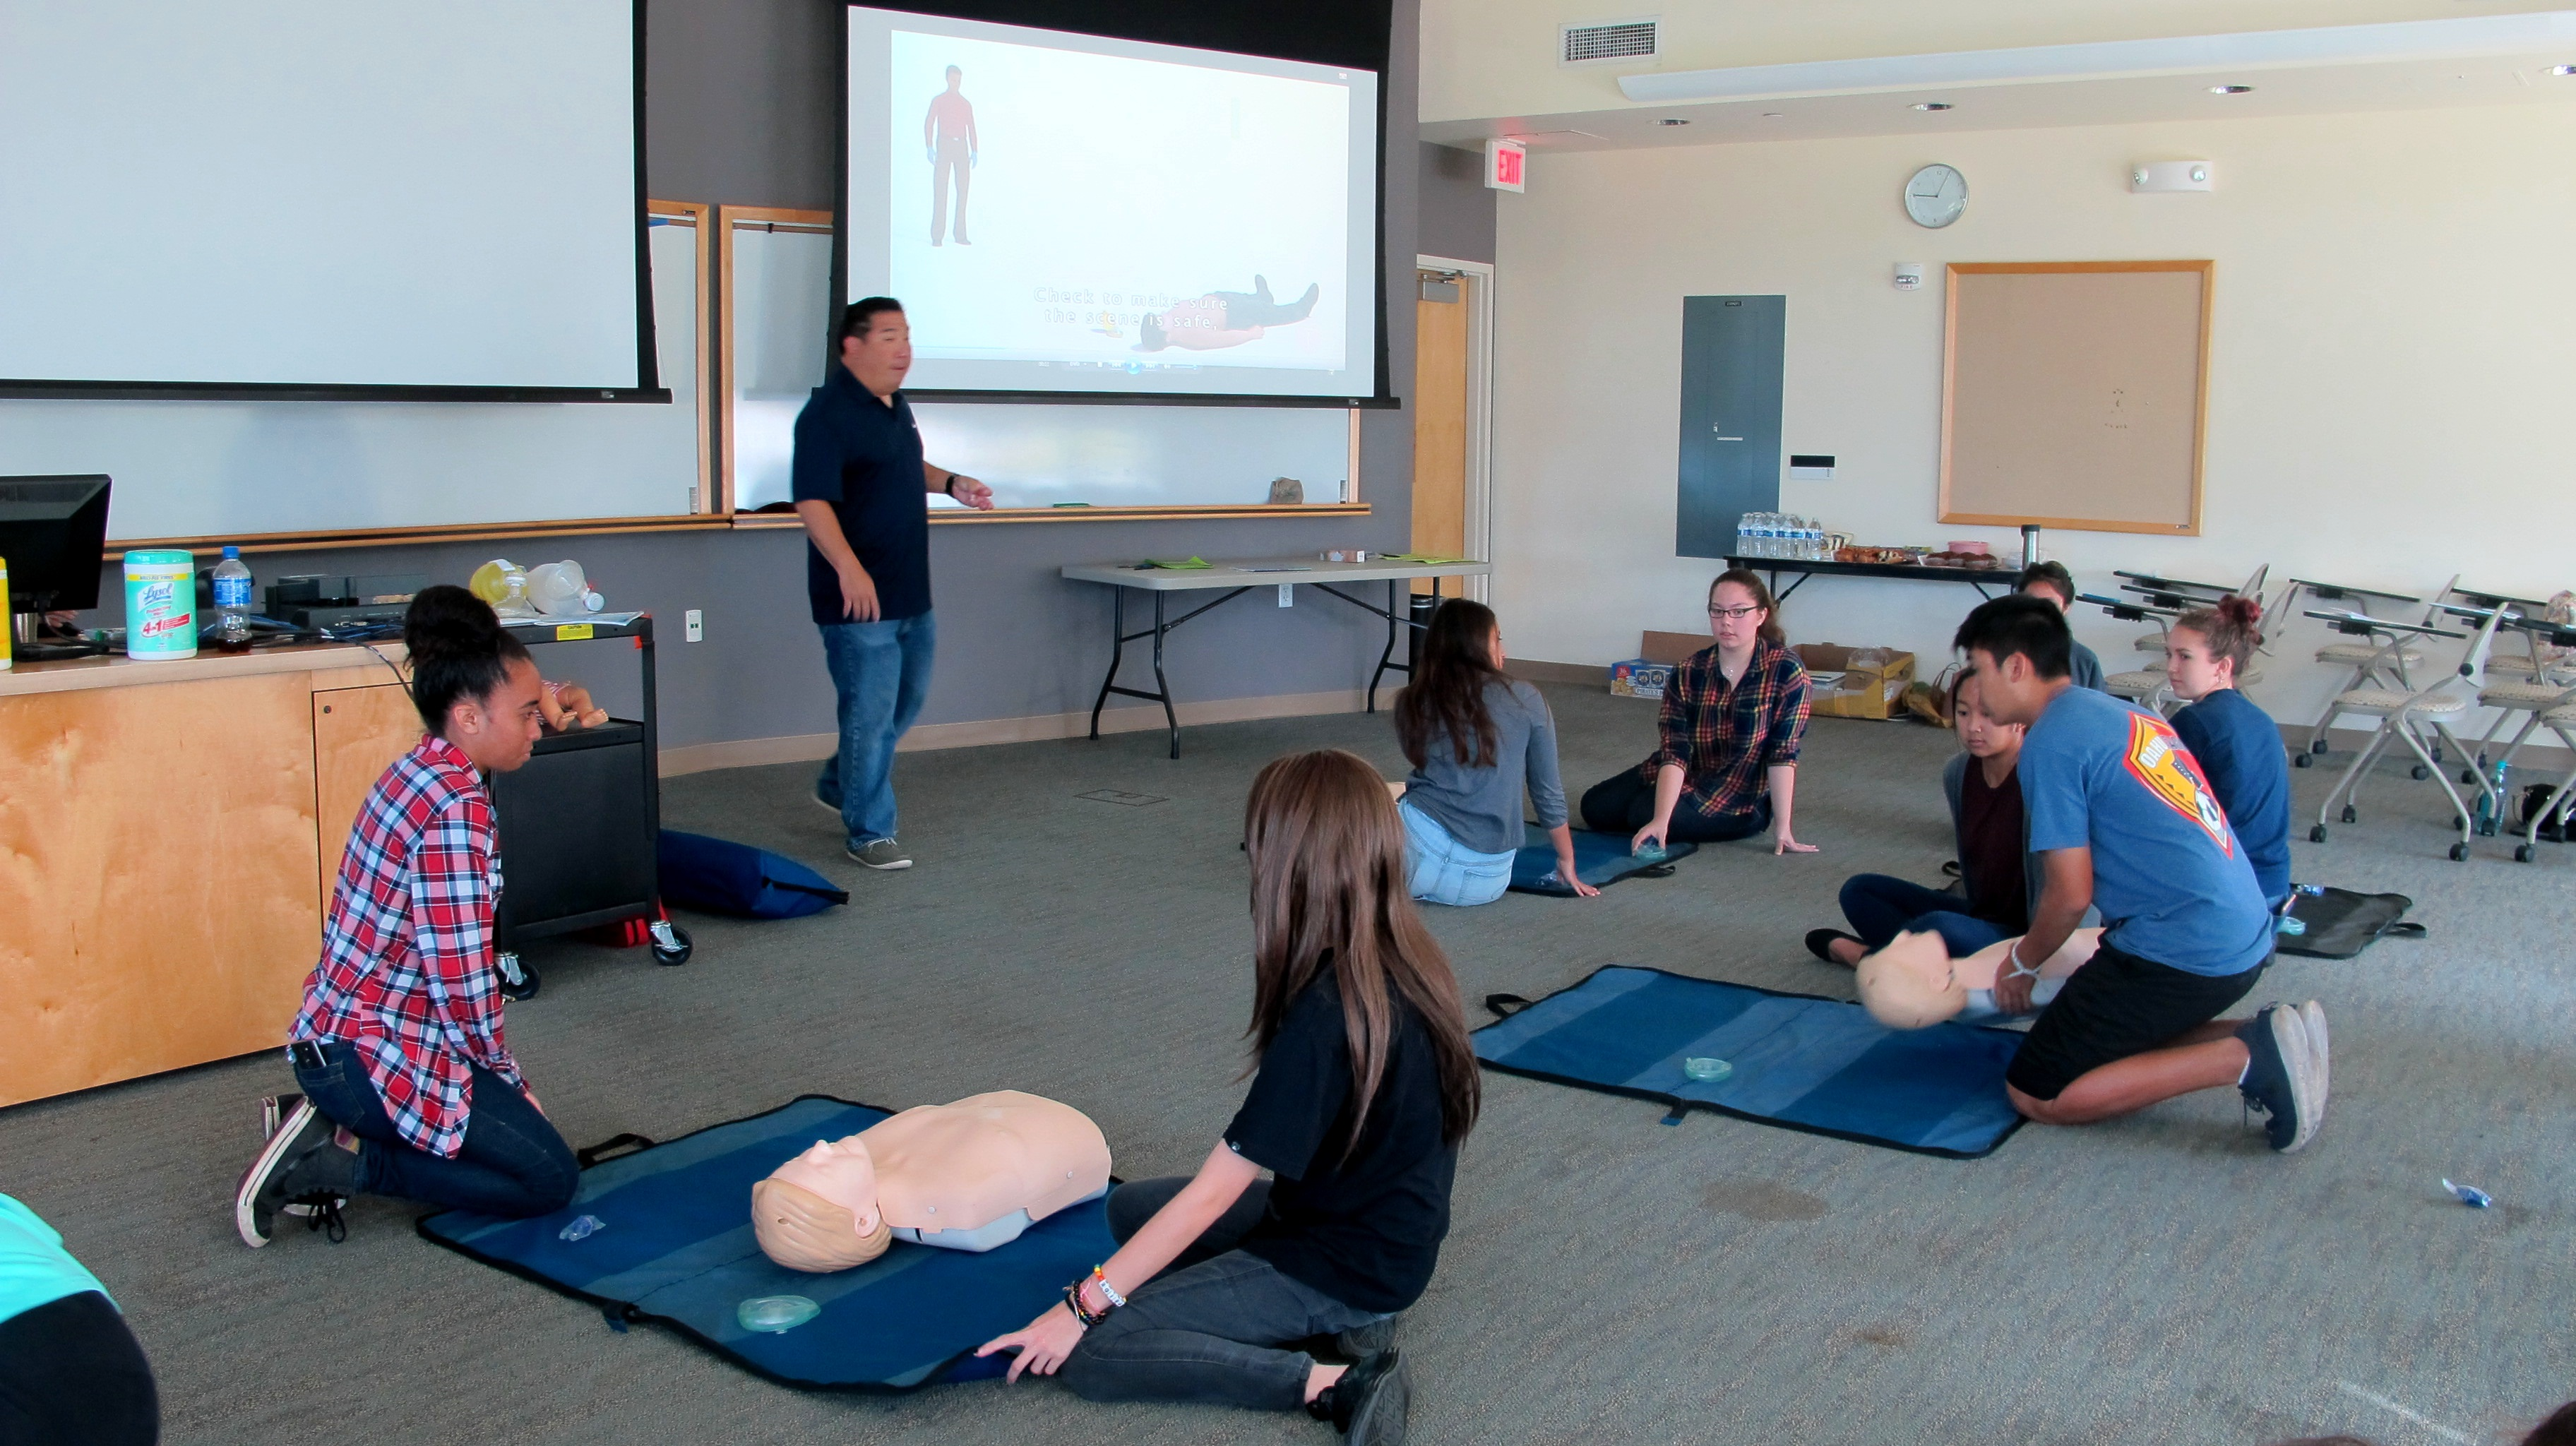 Cpr certification workshop ahec twenty of our corps members became cpr certified at our hands on cpr certification workshop taught by american medical response xflitez Choice Image